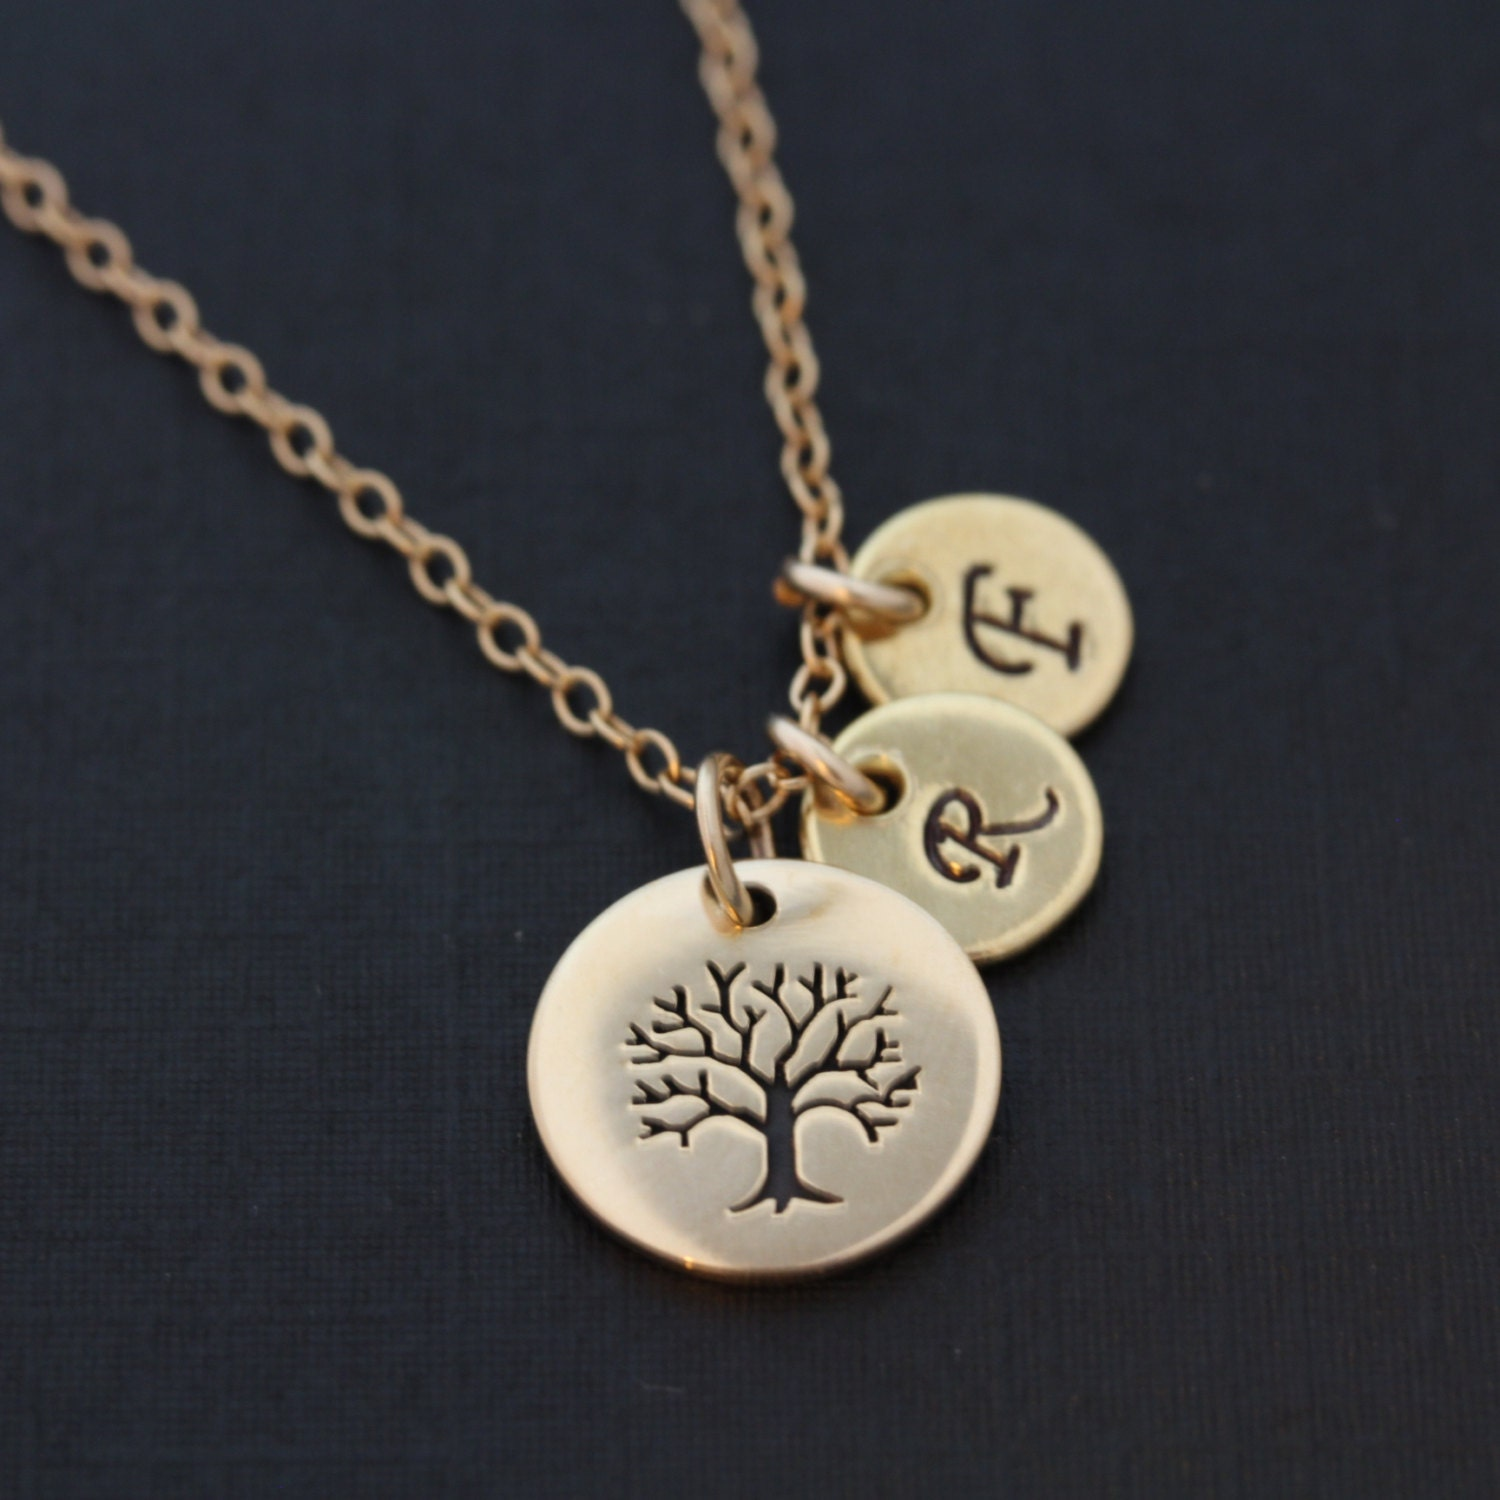 family tree necklace   monogram necklace   gold initial